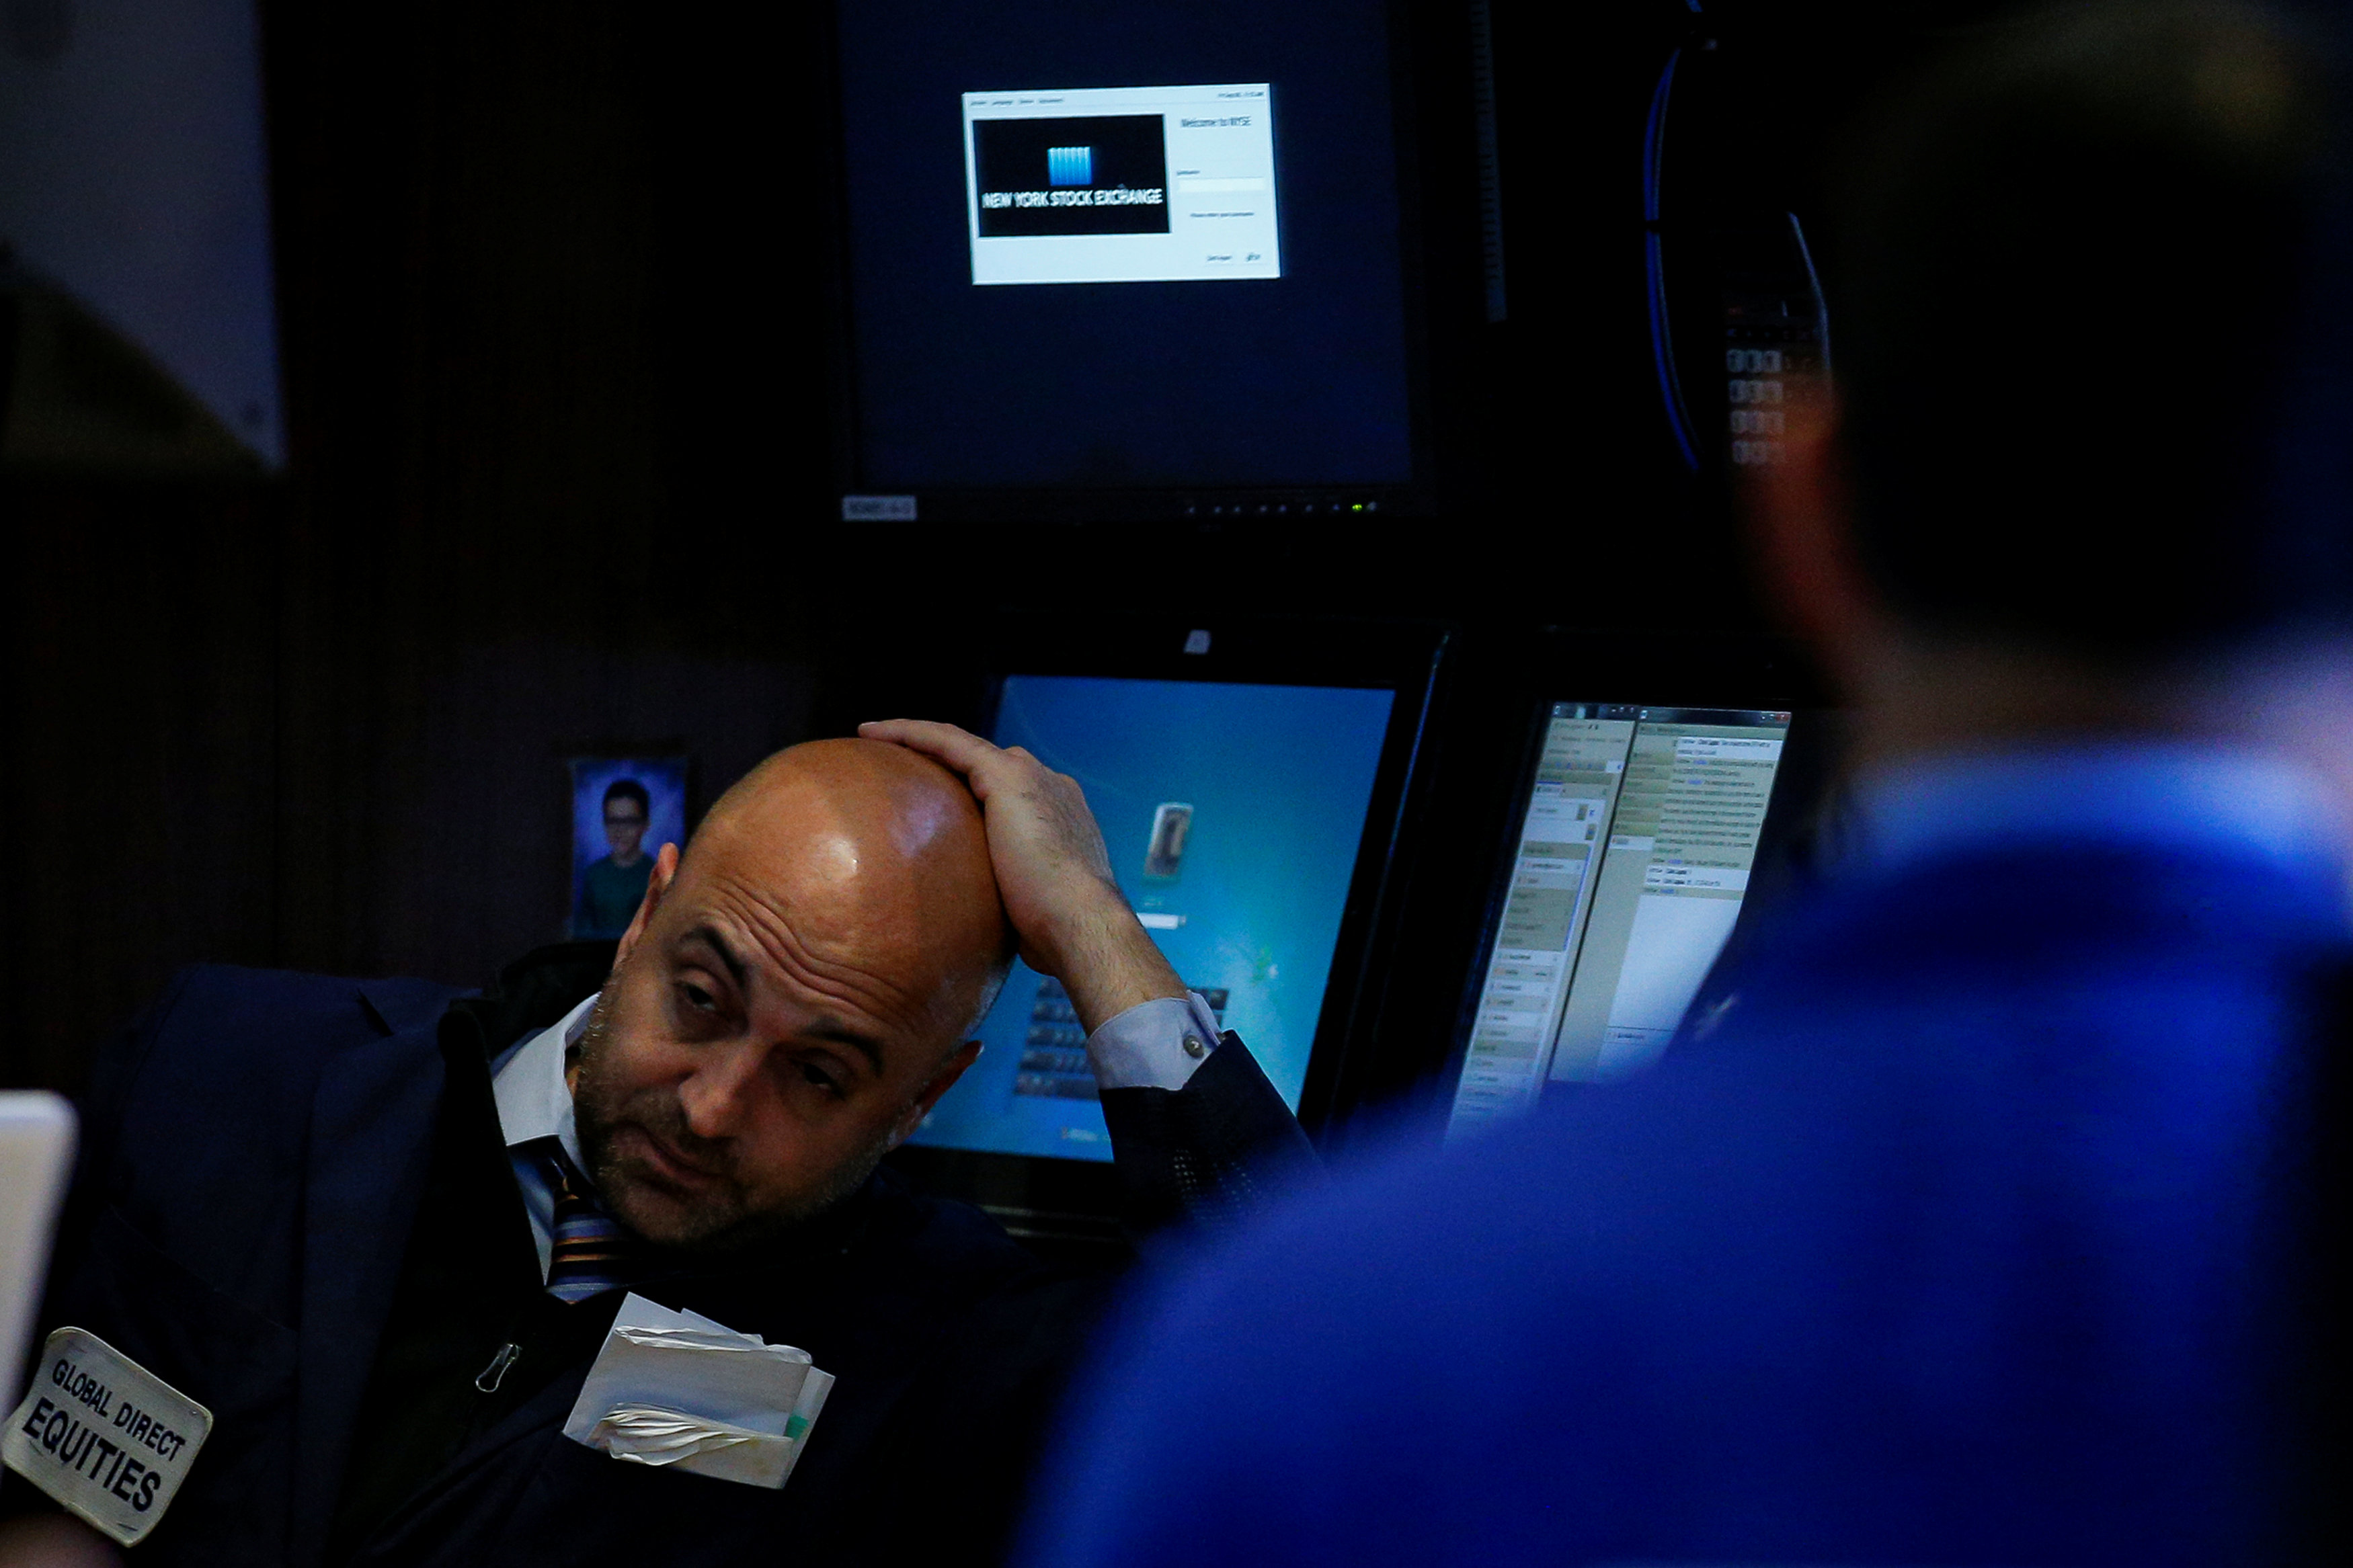 Traders work on the floor of the New York Stock Exchange (NYSE) in New York, U.S., September 8, 2017.